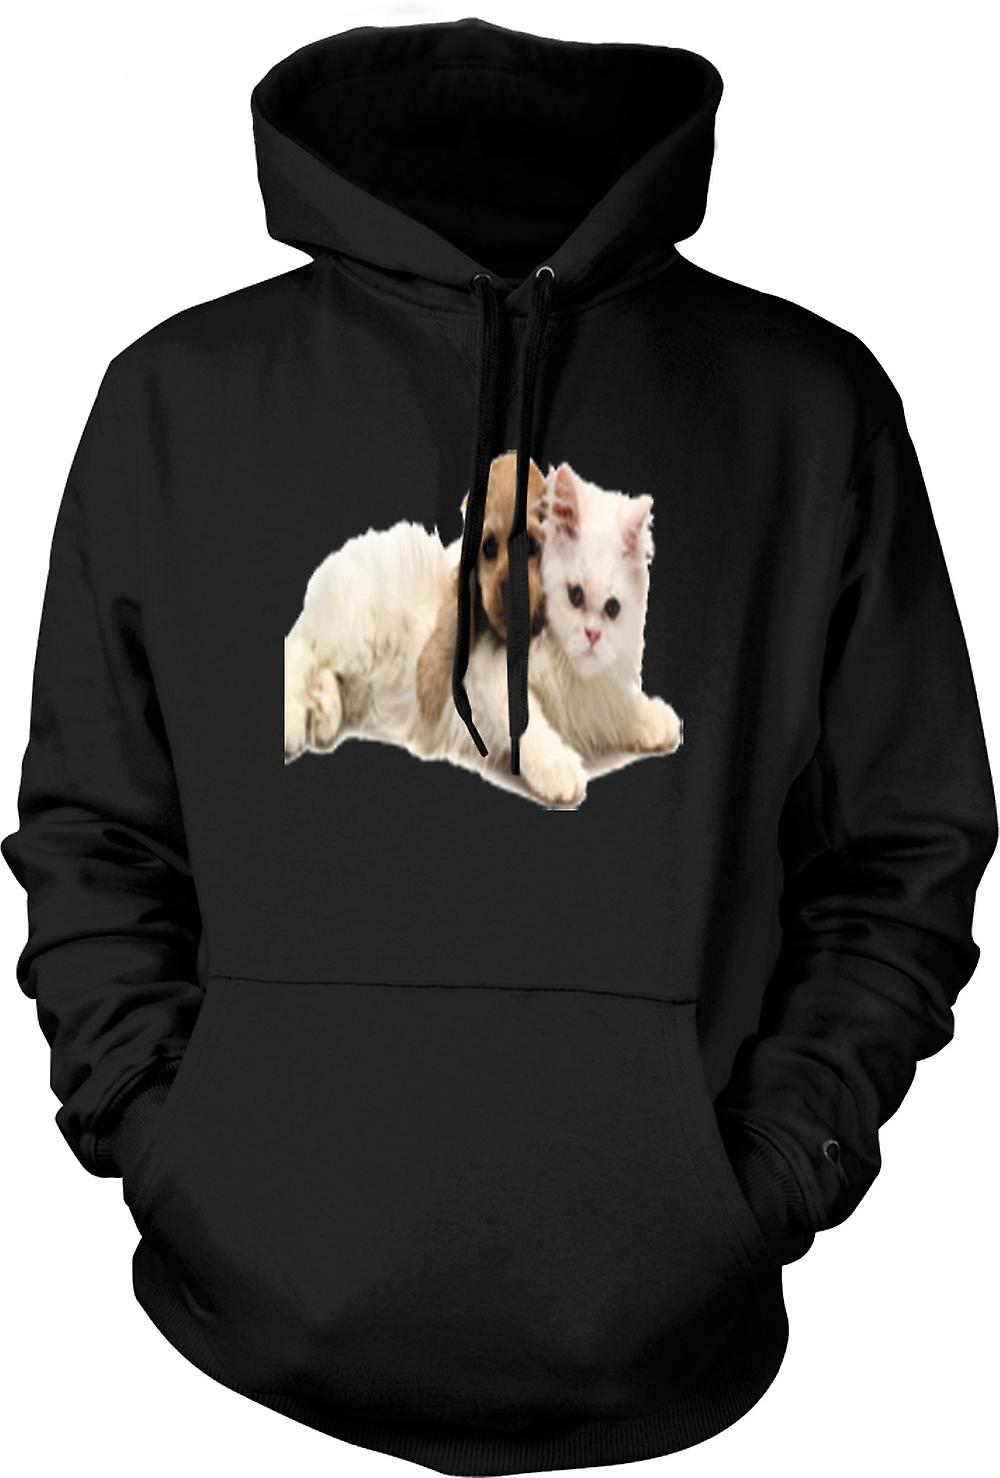 Mens Hoodie - Cute Cat And Dog Portrait